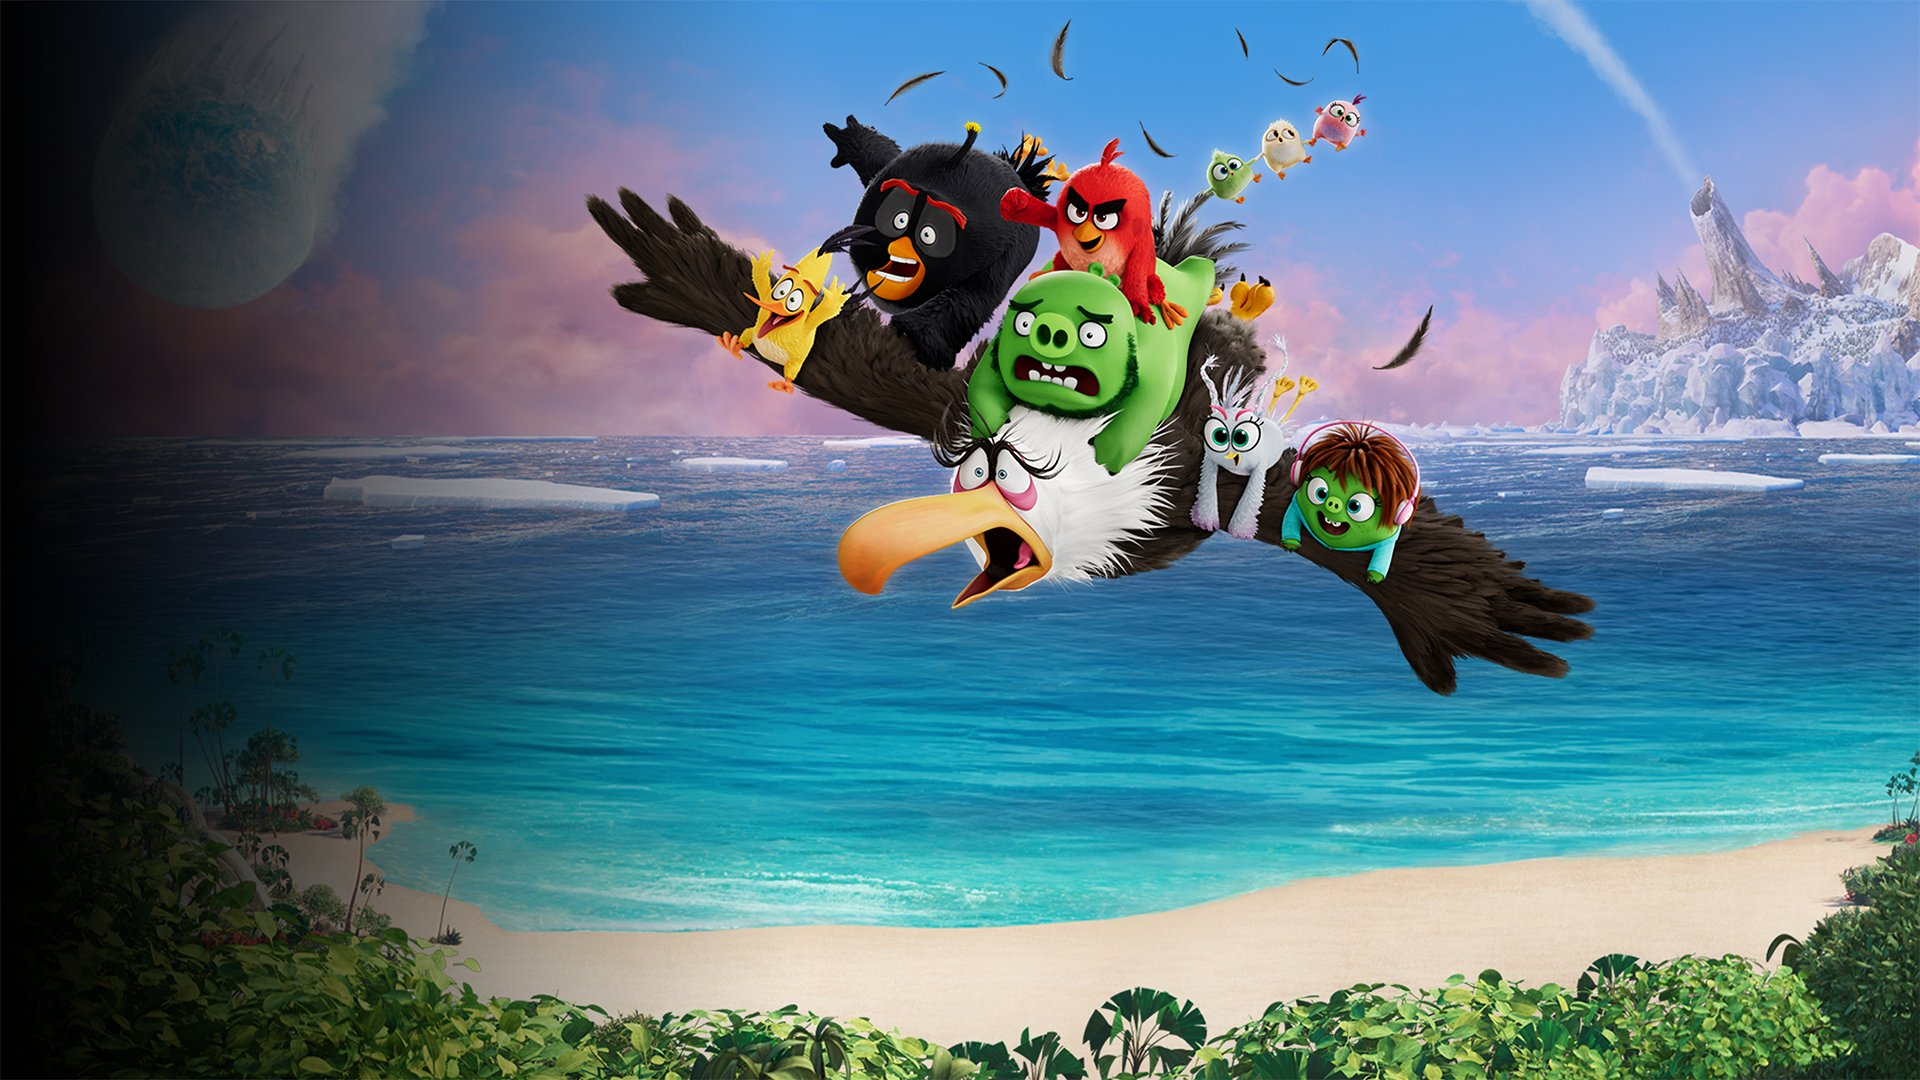 fond Angry Birds : Copains comme cochons - Bande-annonce 1